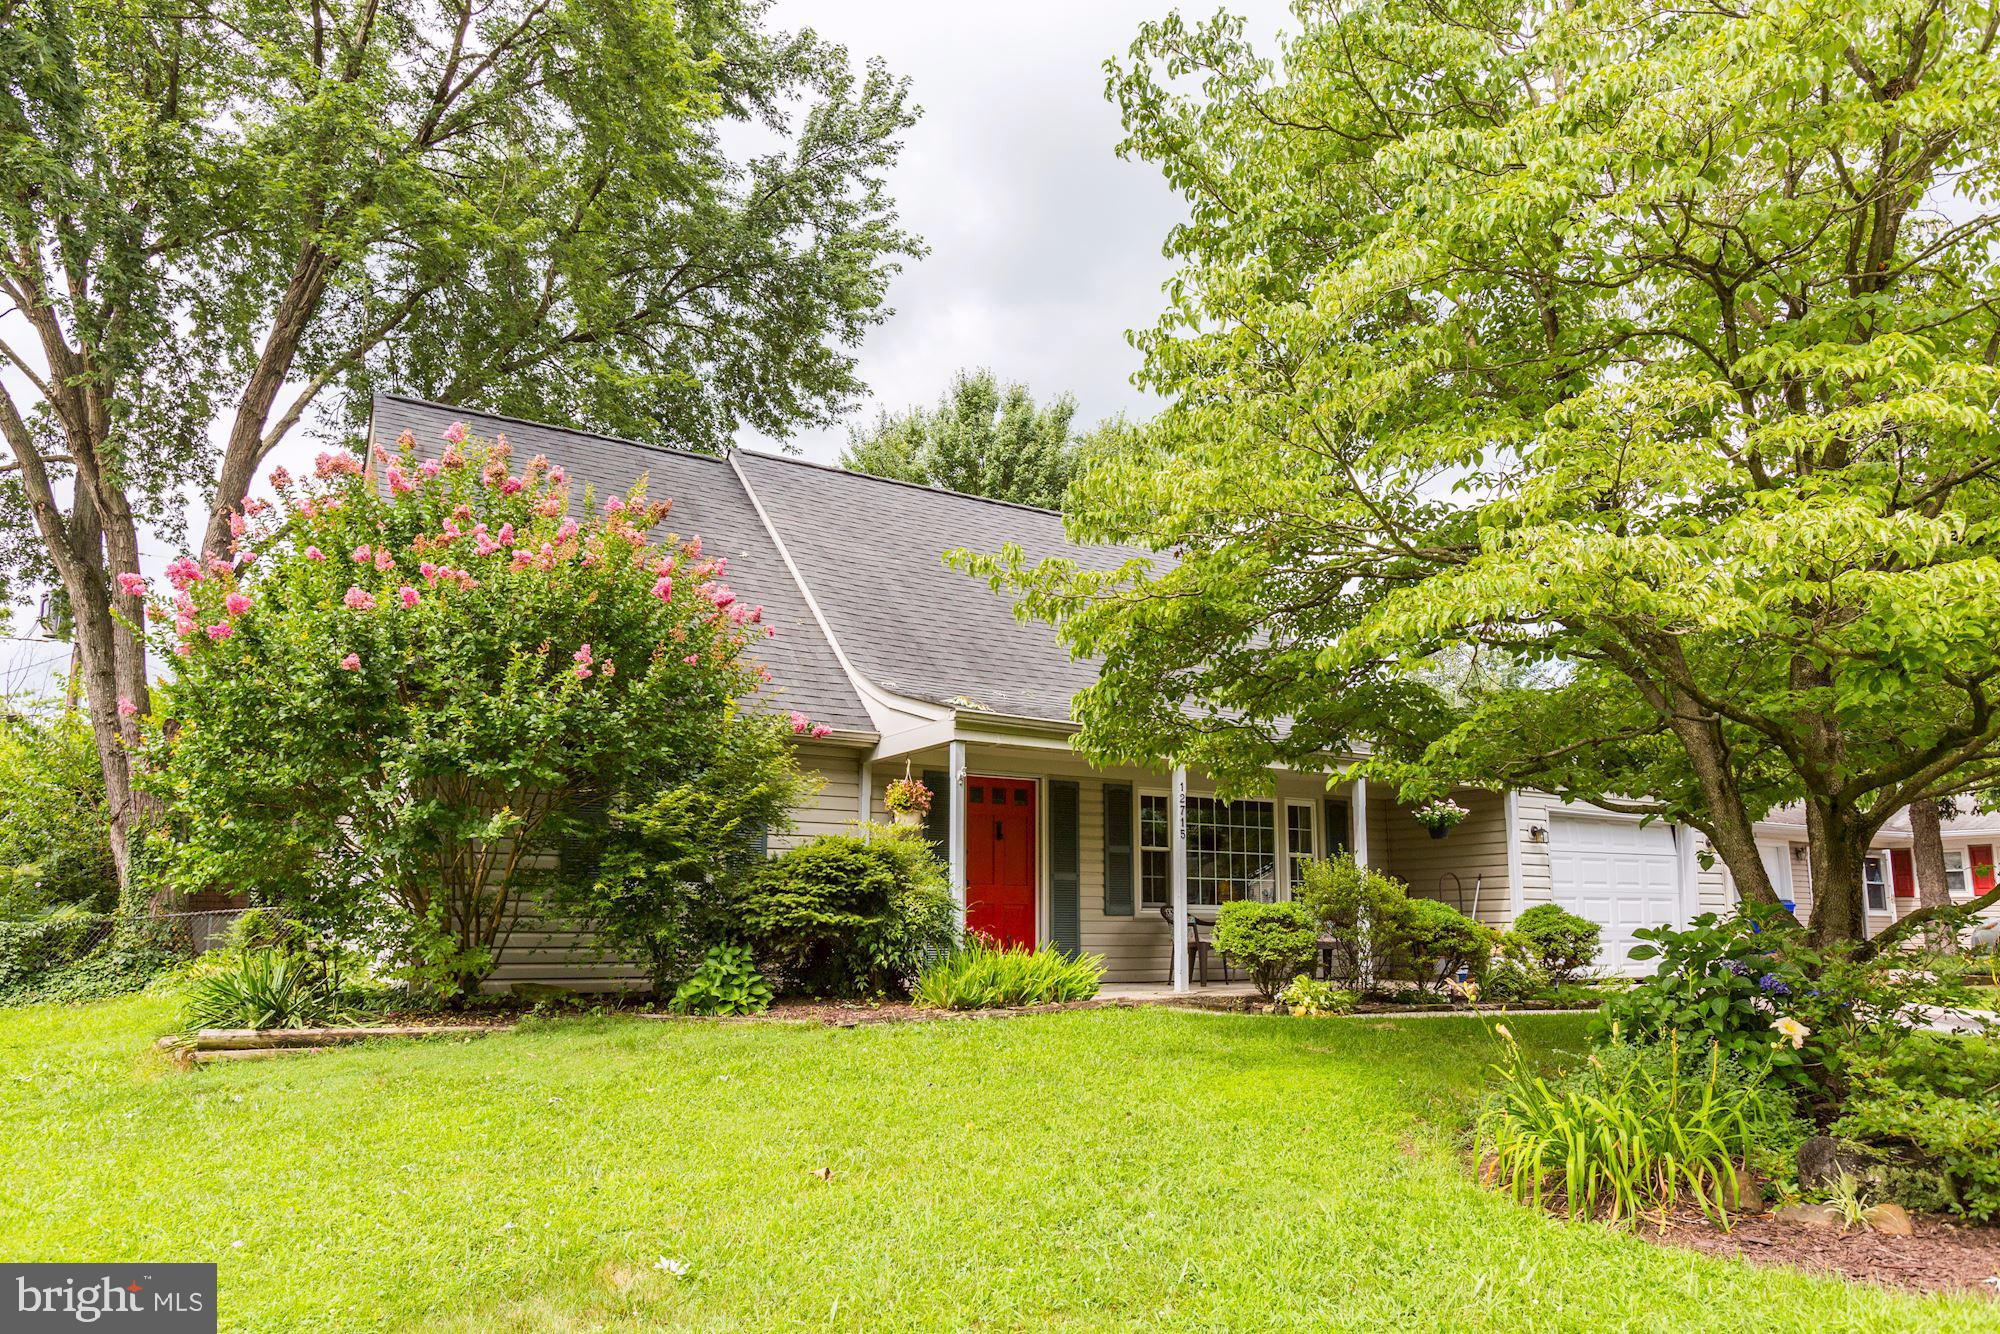 Inviting and Comfortable, this home with 2128 SF is one of the largest Cape Cods in the neighborhood